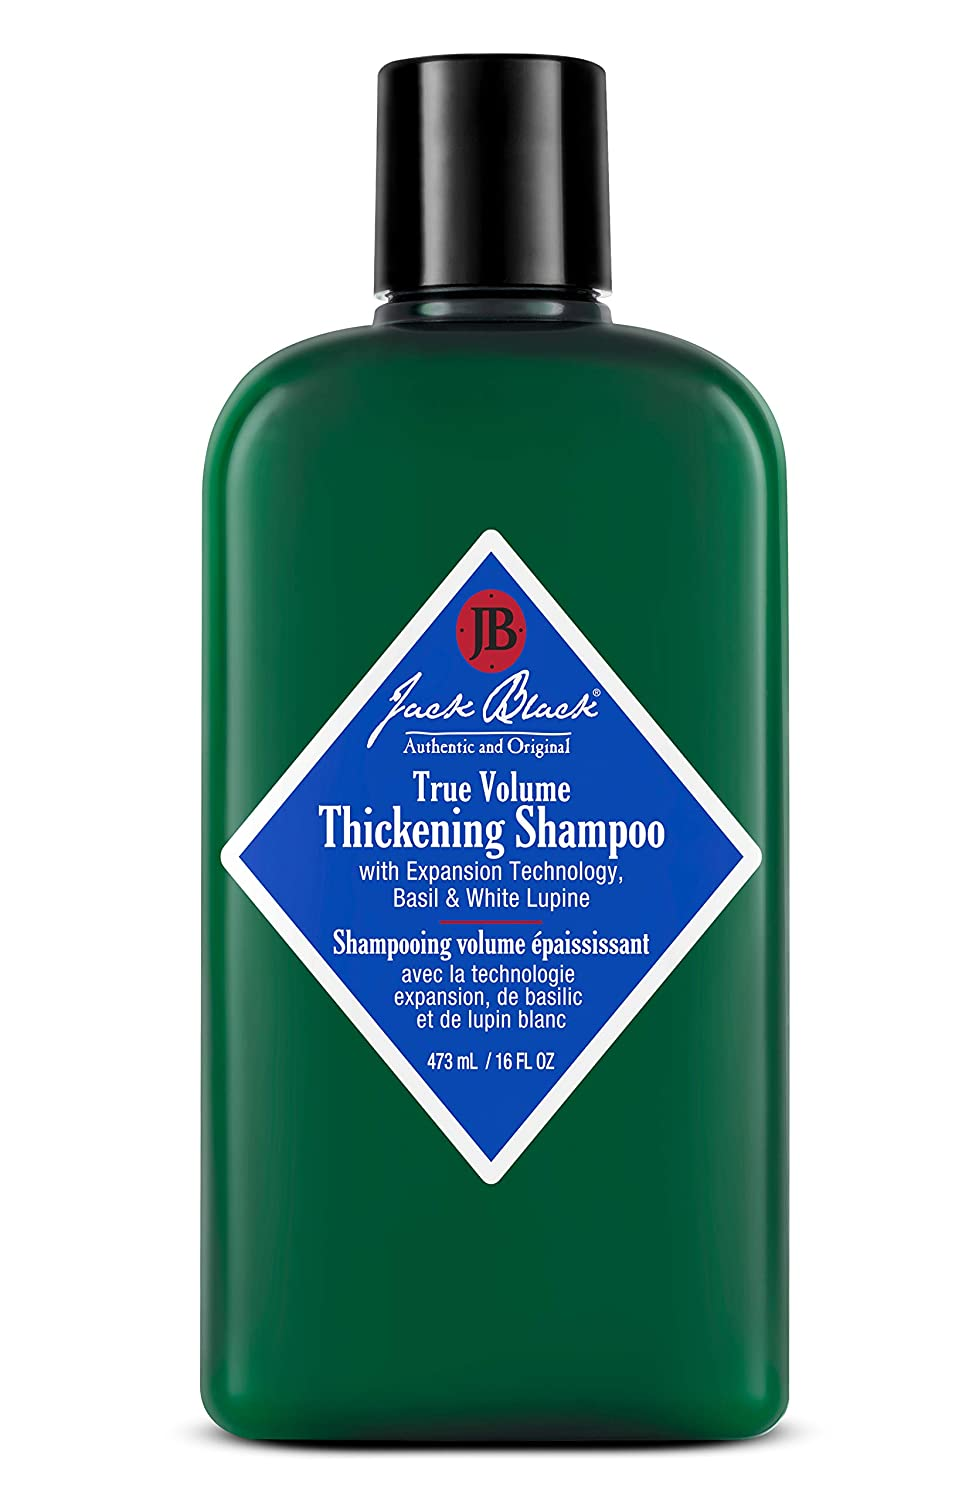 JACK BLACK – True Volume Thickening Shampoo – PureScience Formula, Expansion Technology, Basil & White Lupine, Sulfate-Free Shampoo,and Product Build-Up, Helps Thicken Hair, 16 Oz